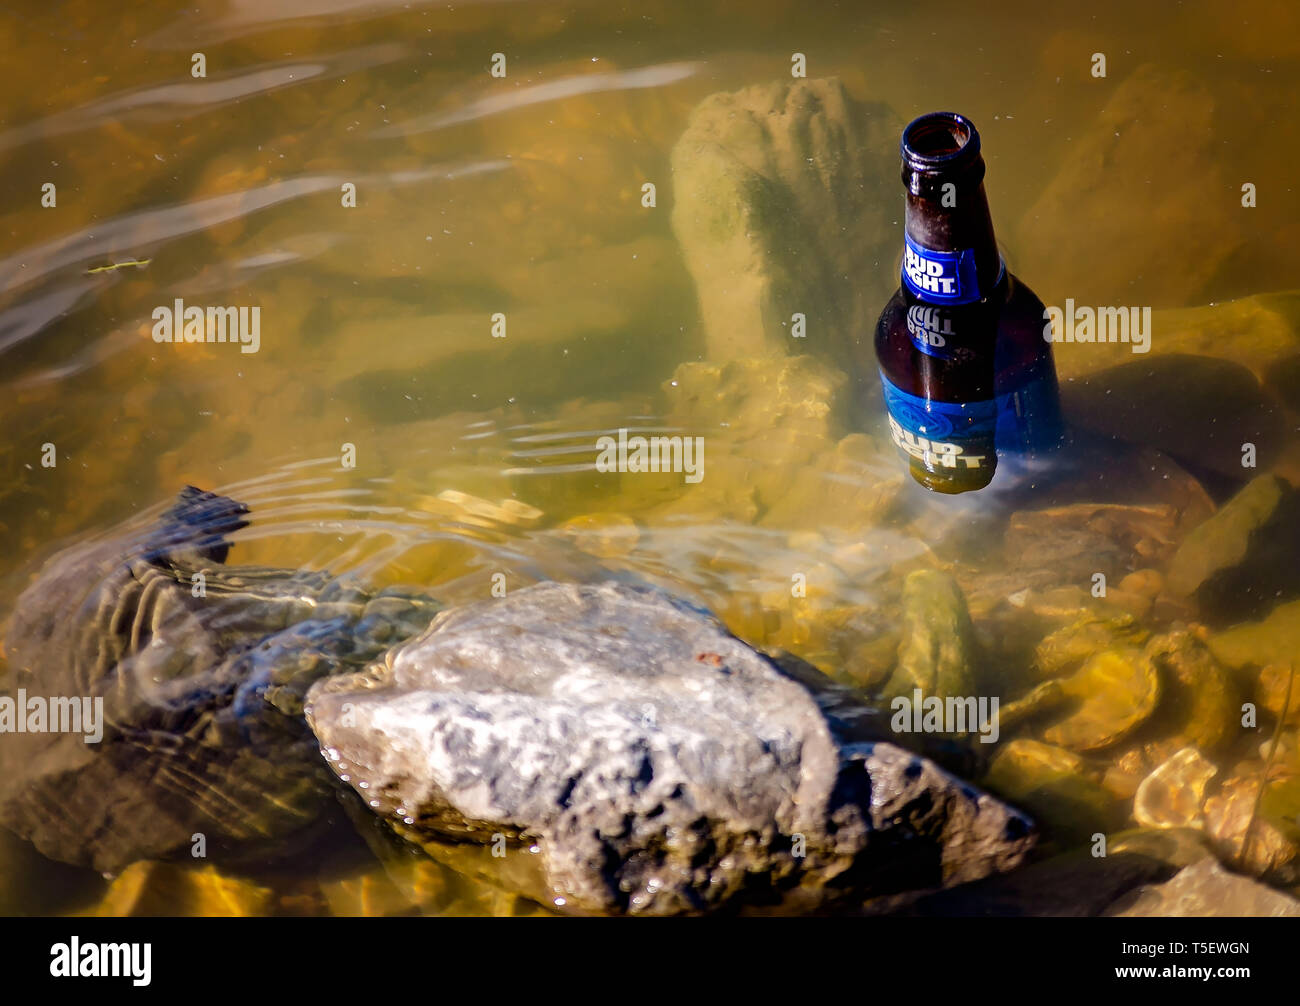 A glass Bud Light beer bottle floats in the water, April 14, 2019, in Bayou La Batre, Alabama. - Stock Image